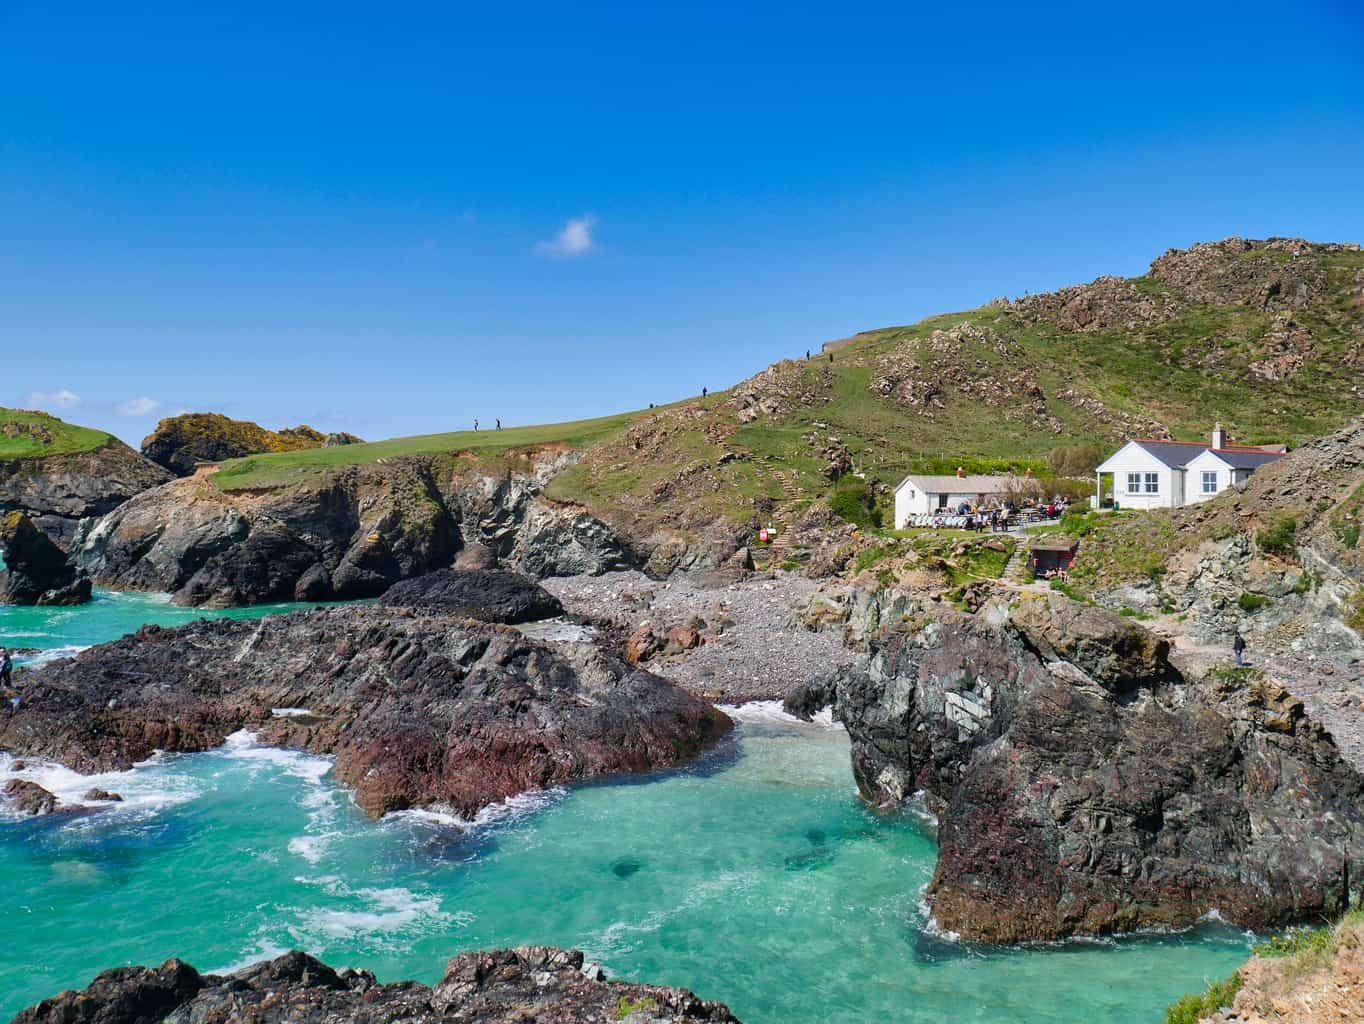 Kynance Cove with incredible blue water and a view of the white cafe building